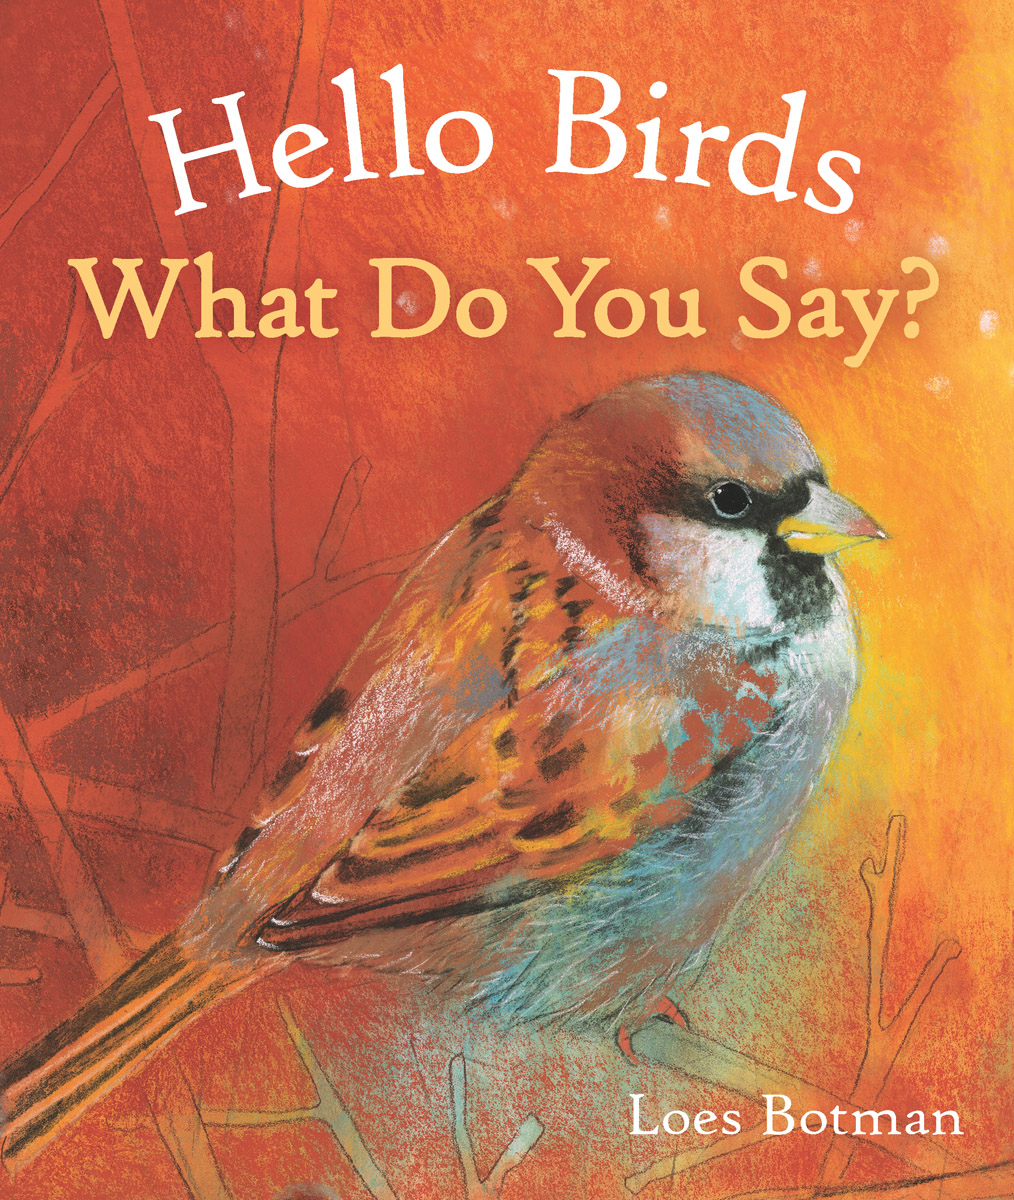 Hello Birds, What Do You Say? - Floris Books